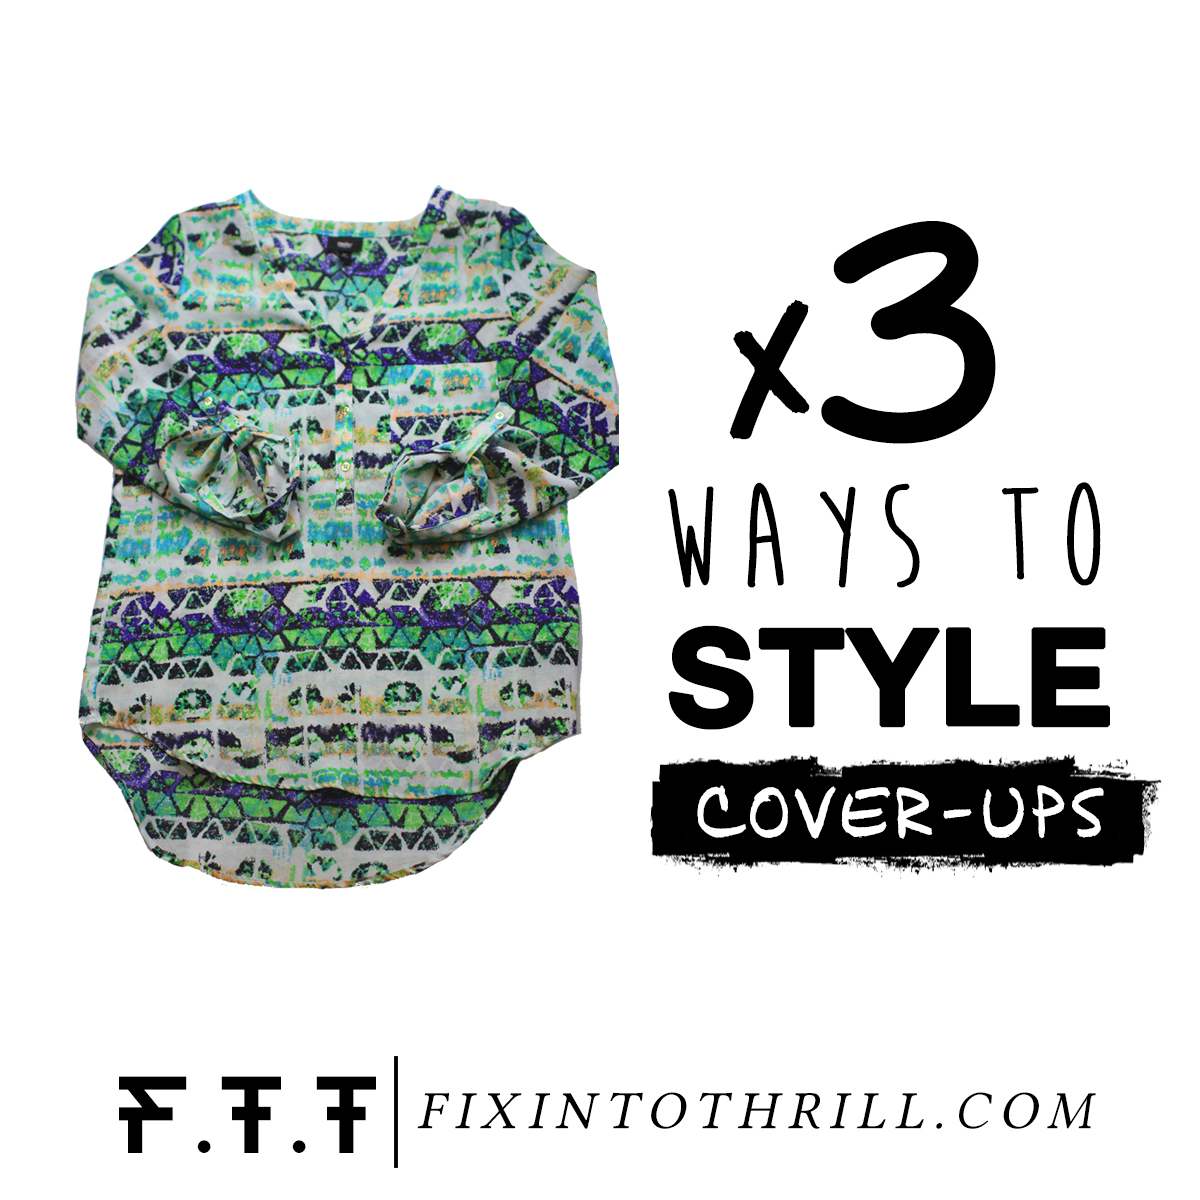 Fixin to Thrill | Austin Fashion Blog: Swimsuit Cover up Styled 3 Ways